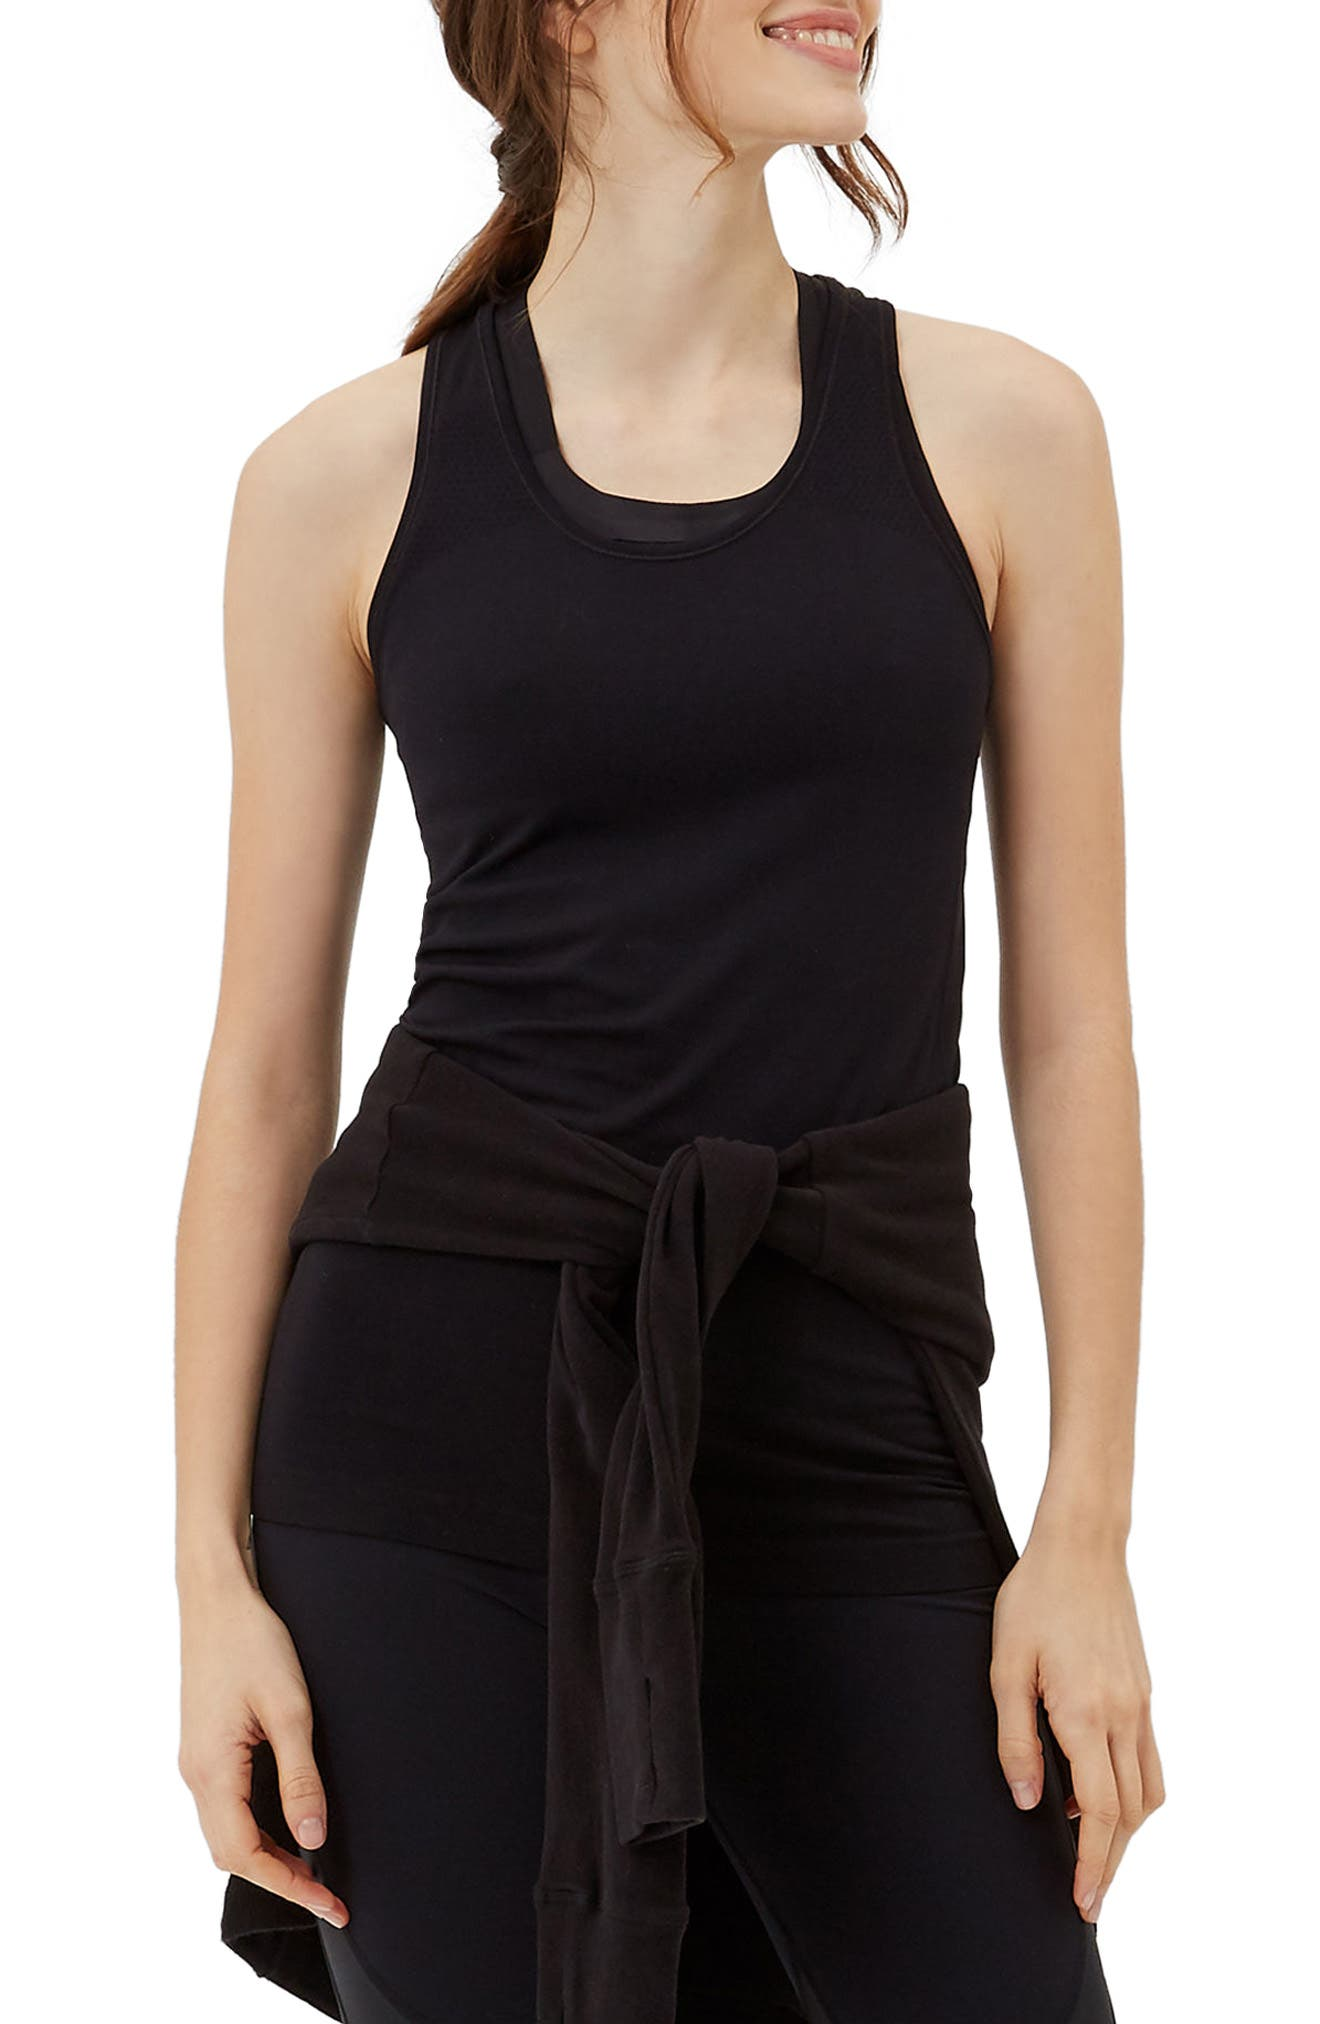 Athlete Seamless Workout Tank,                         Main,                         color,